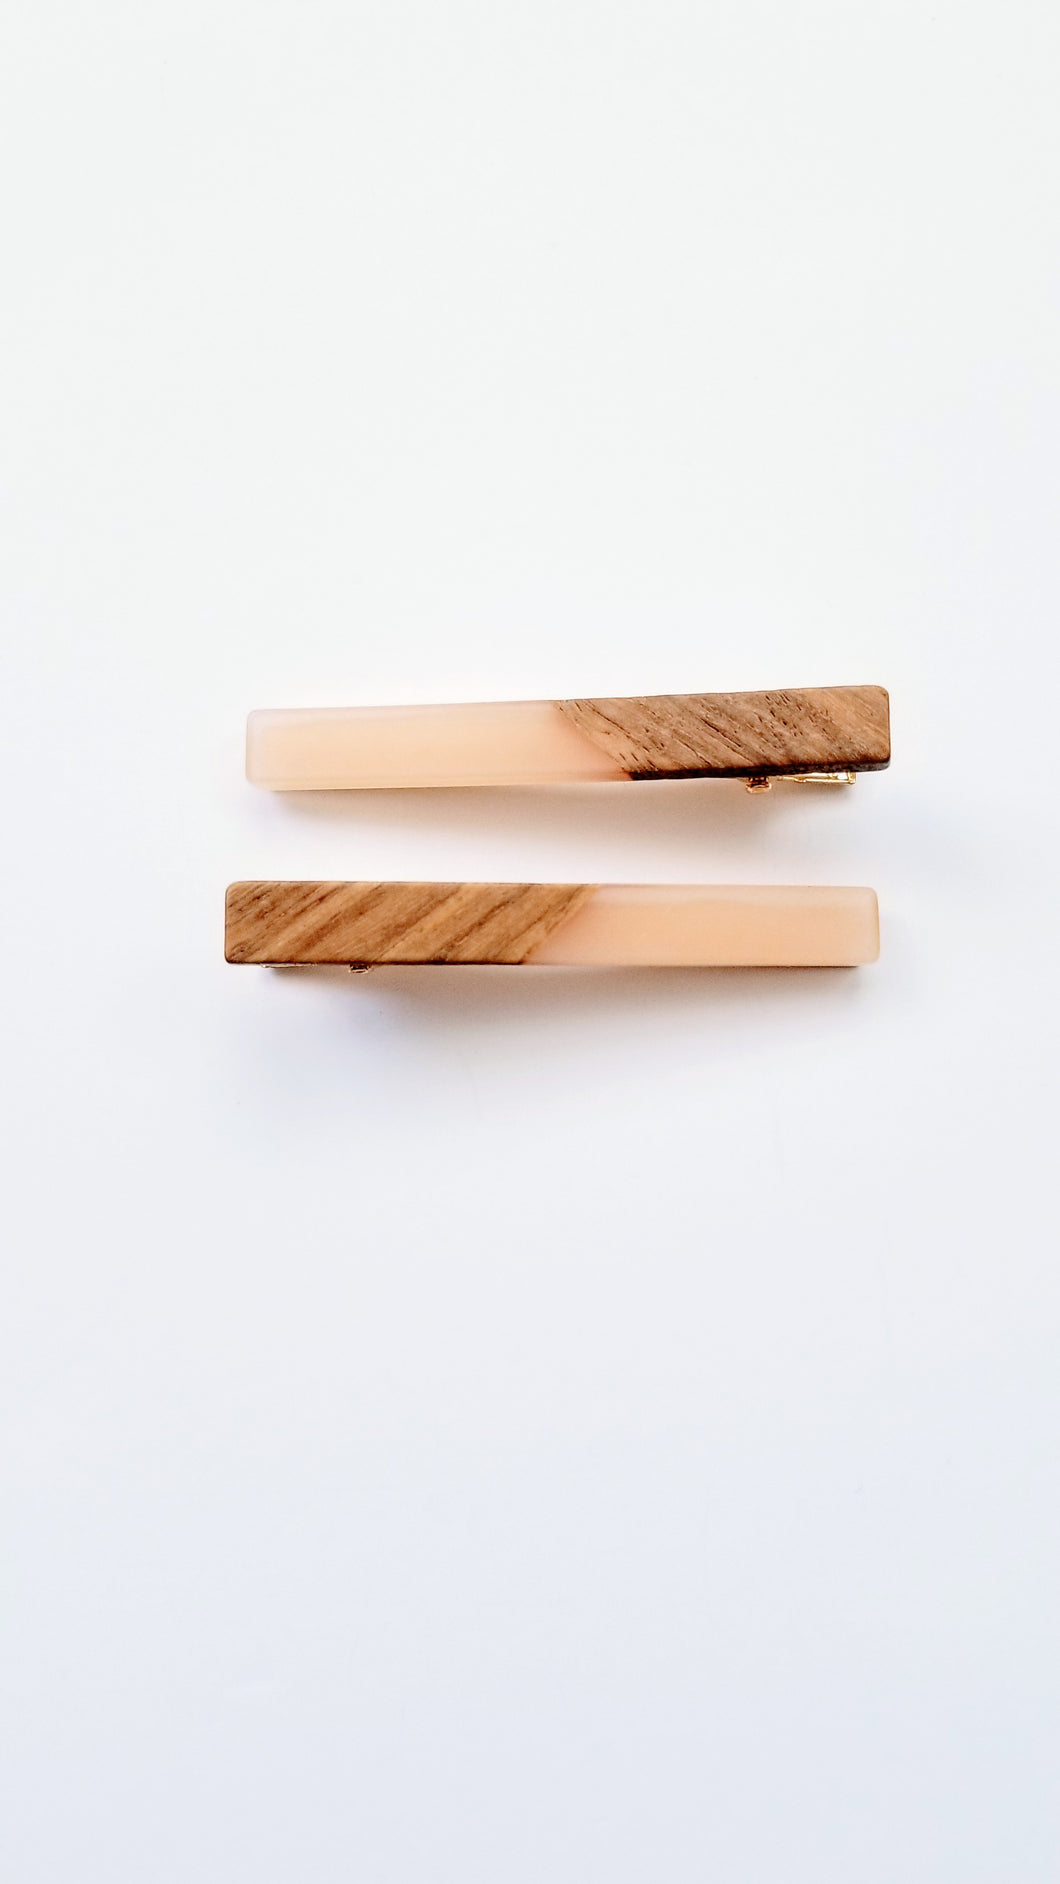 Yemi Wooden Acrylic Bar Hair Clip Set | Blush Pink - Adassa Rose